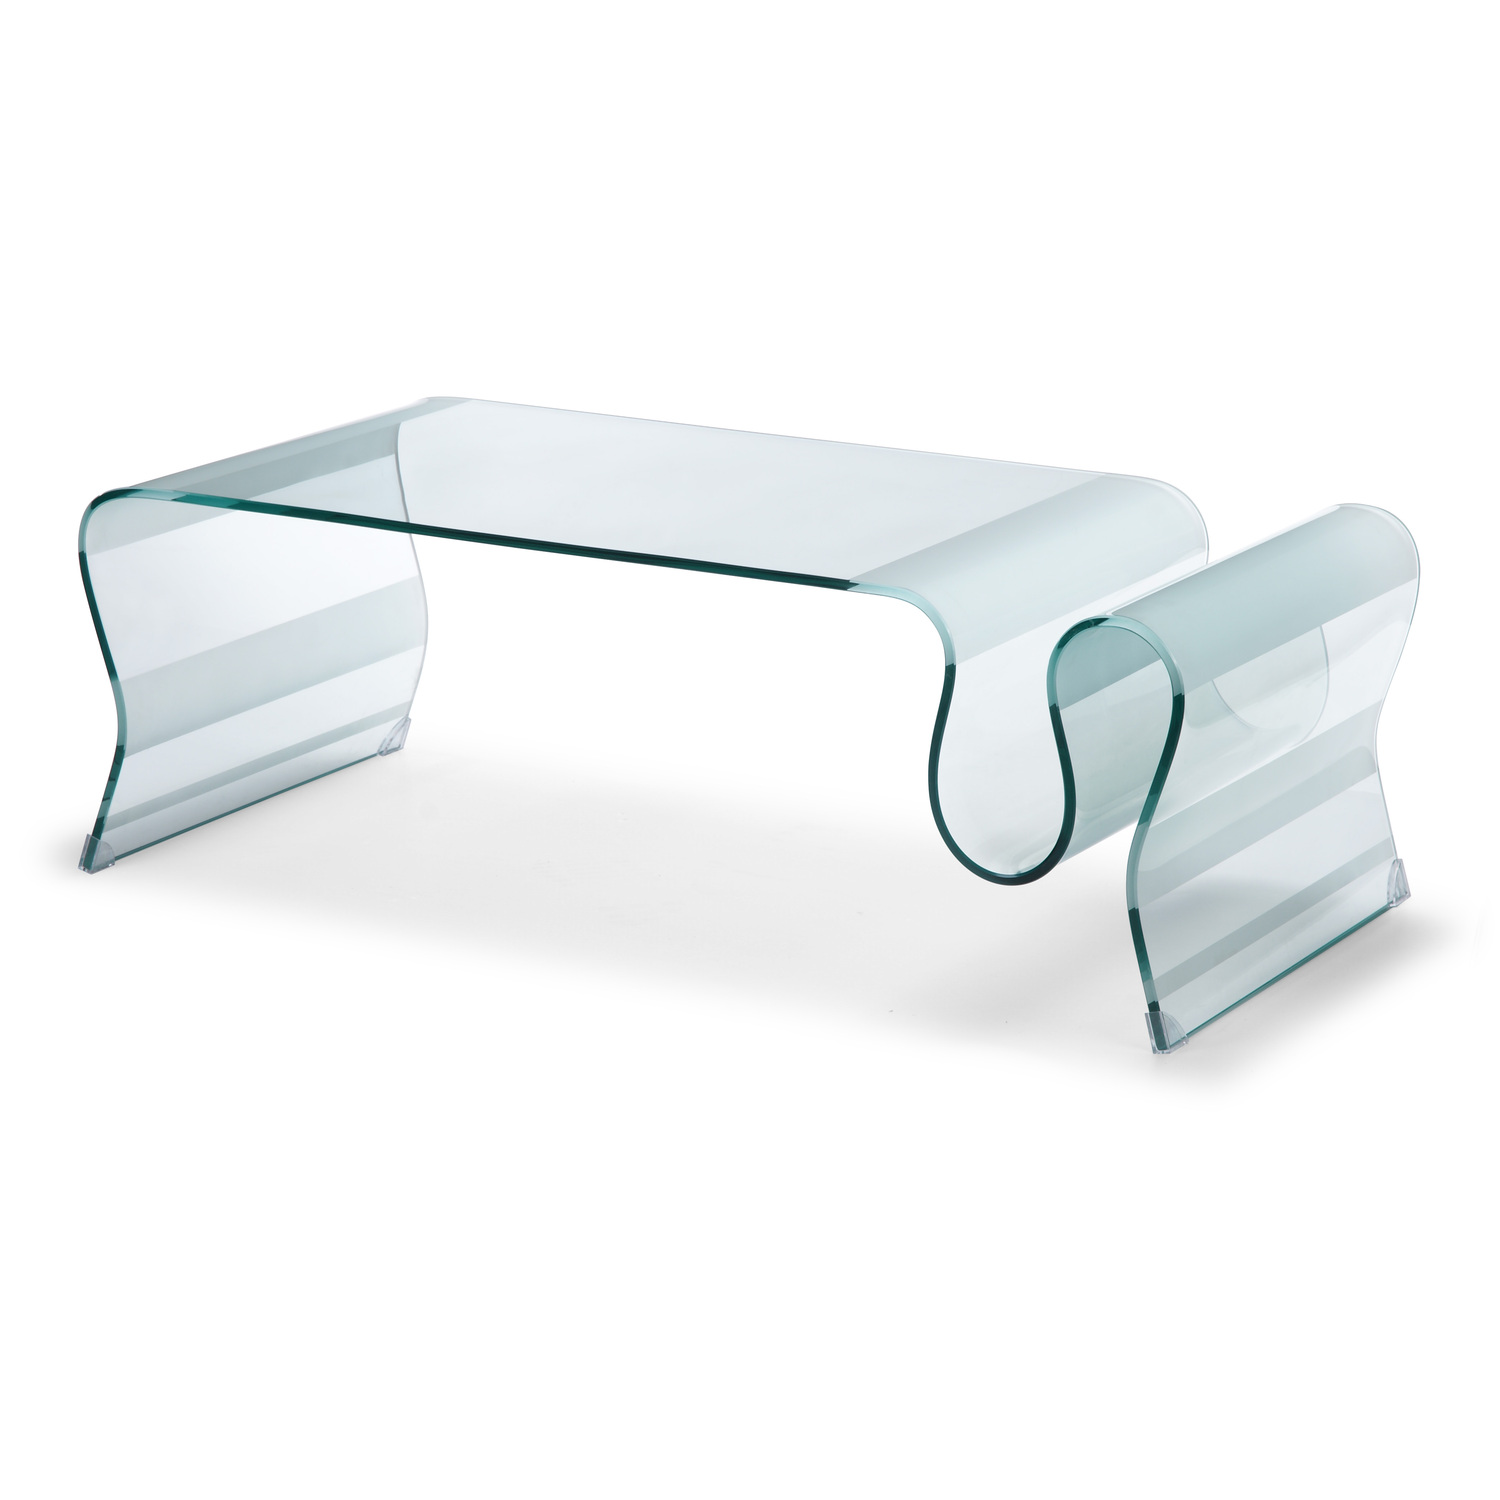 Zuo Modern Coffee Table Coffee Table With Glass Zuo Modern Discovery Coffee Table